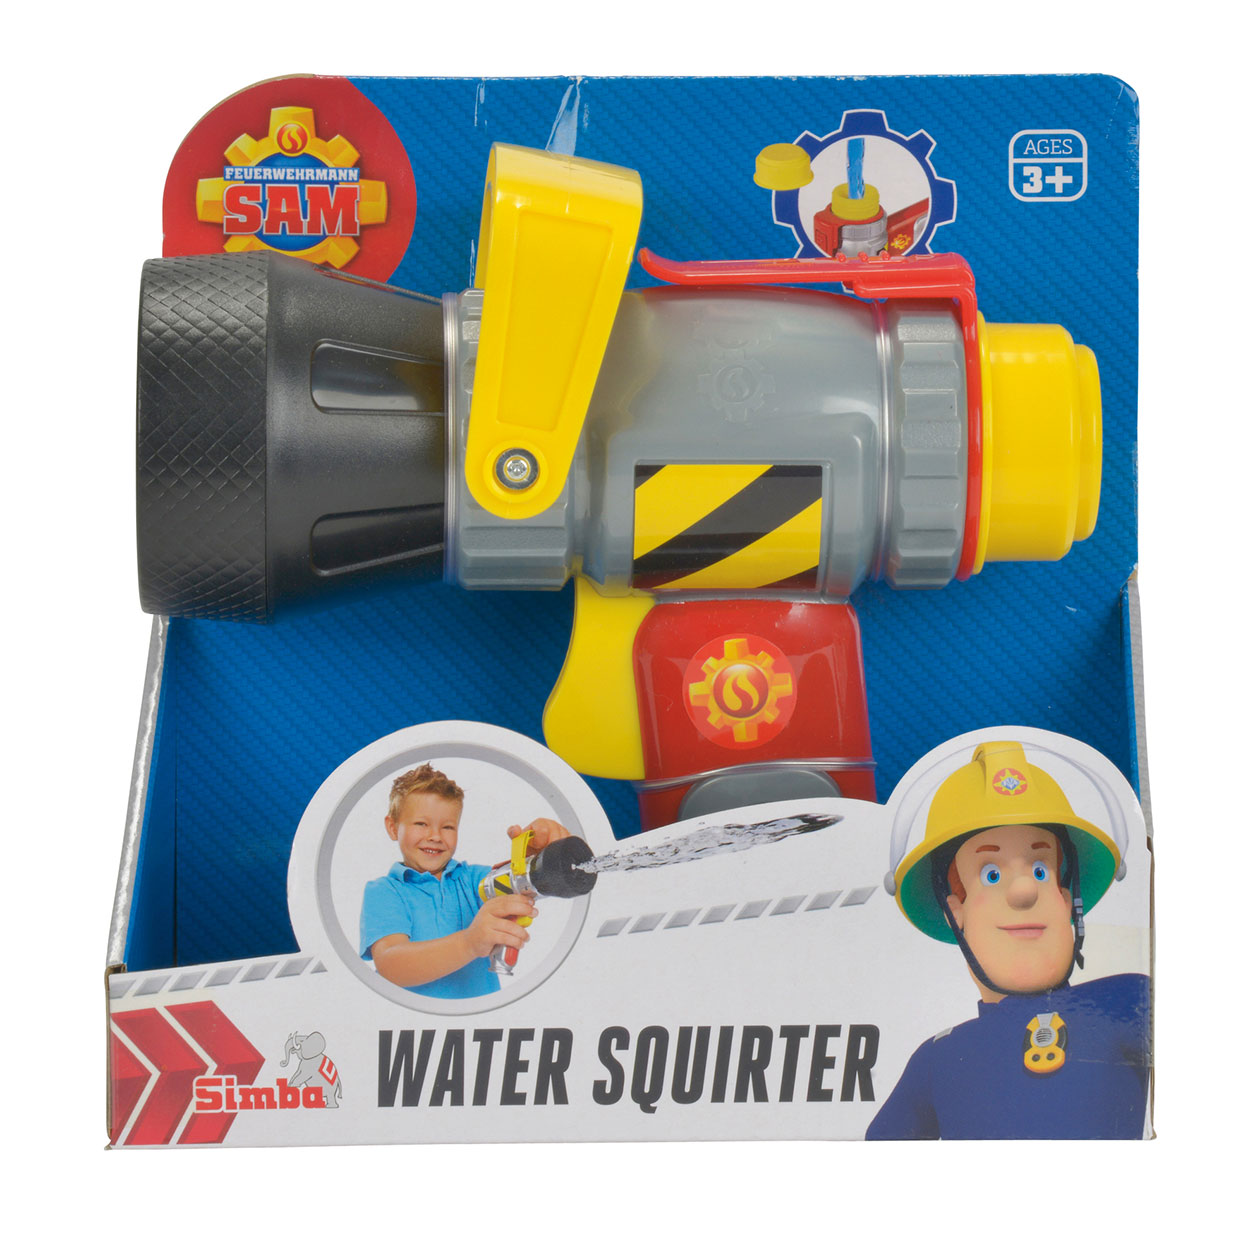 Brandweerman Sam Waterpistool